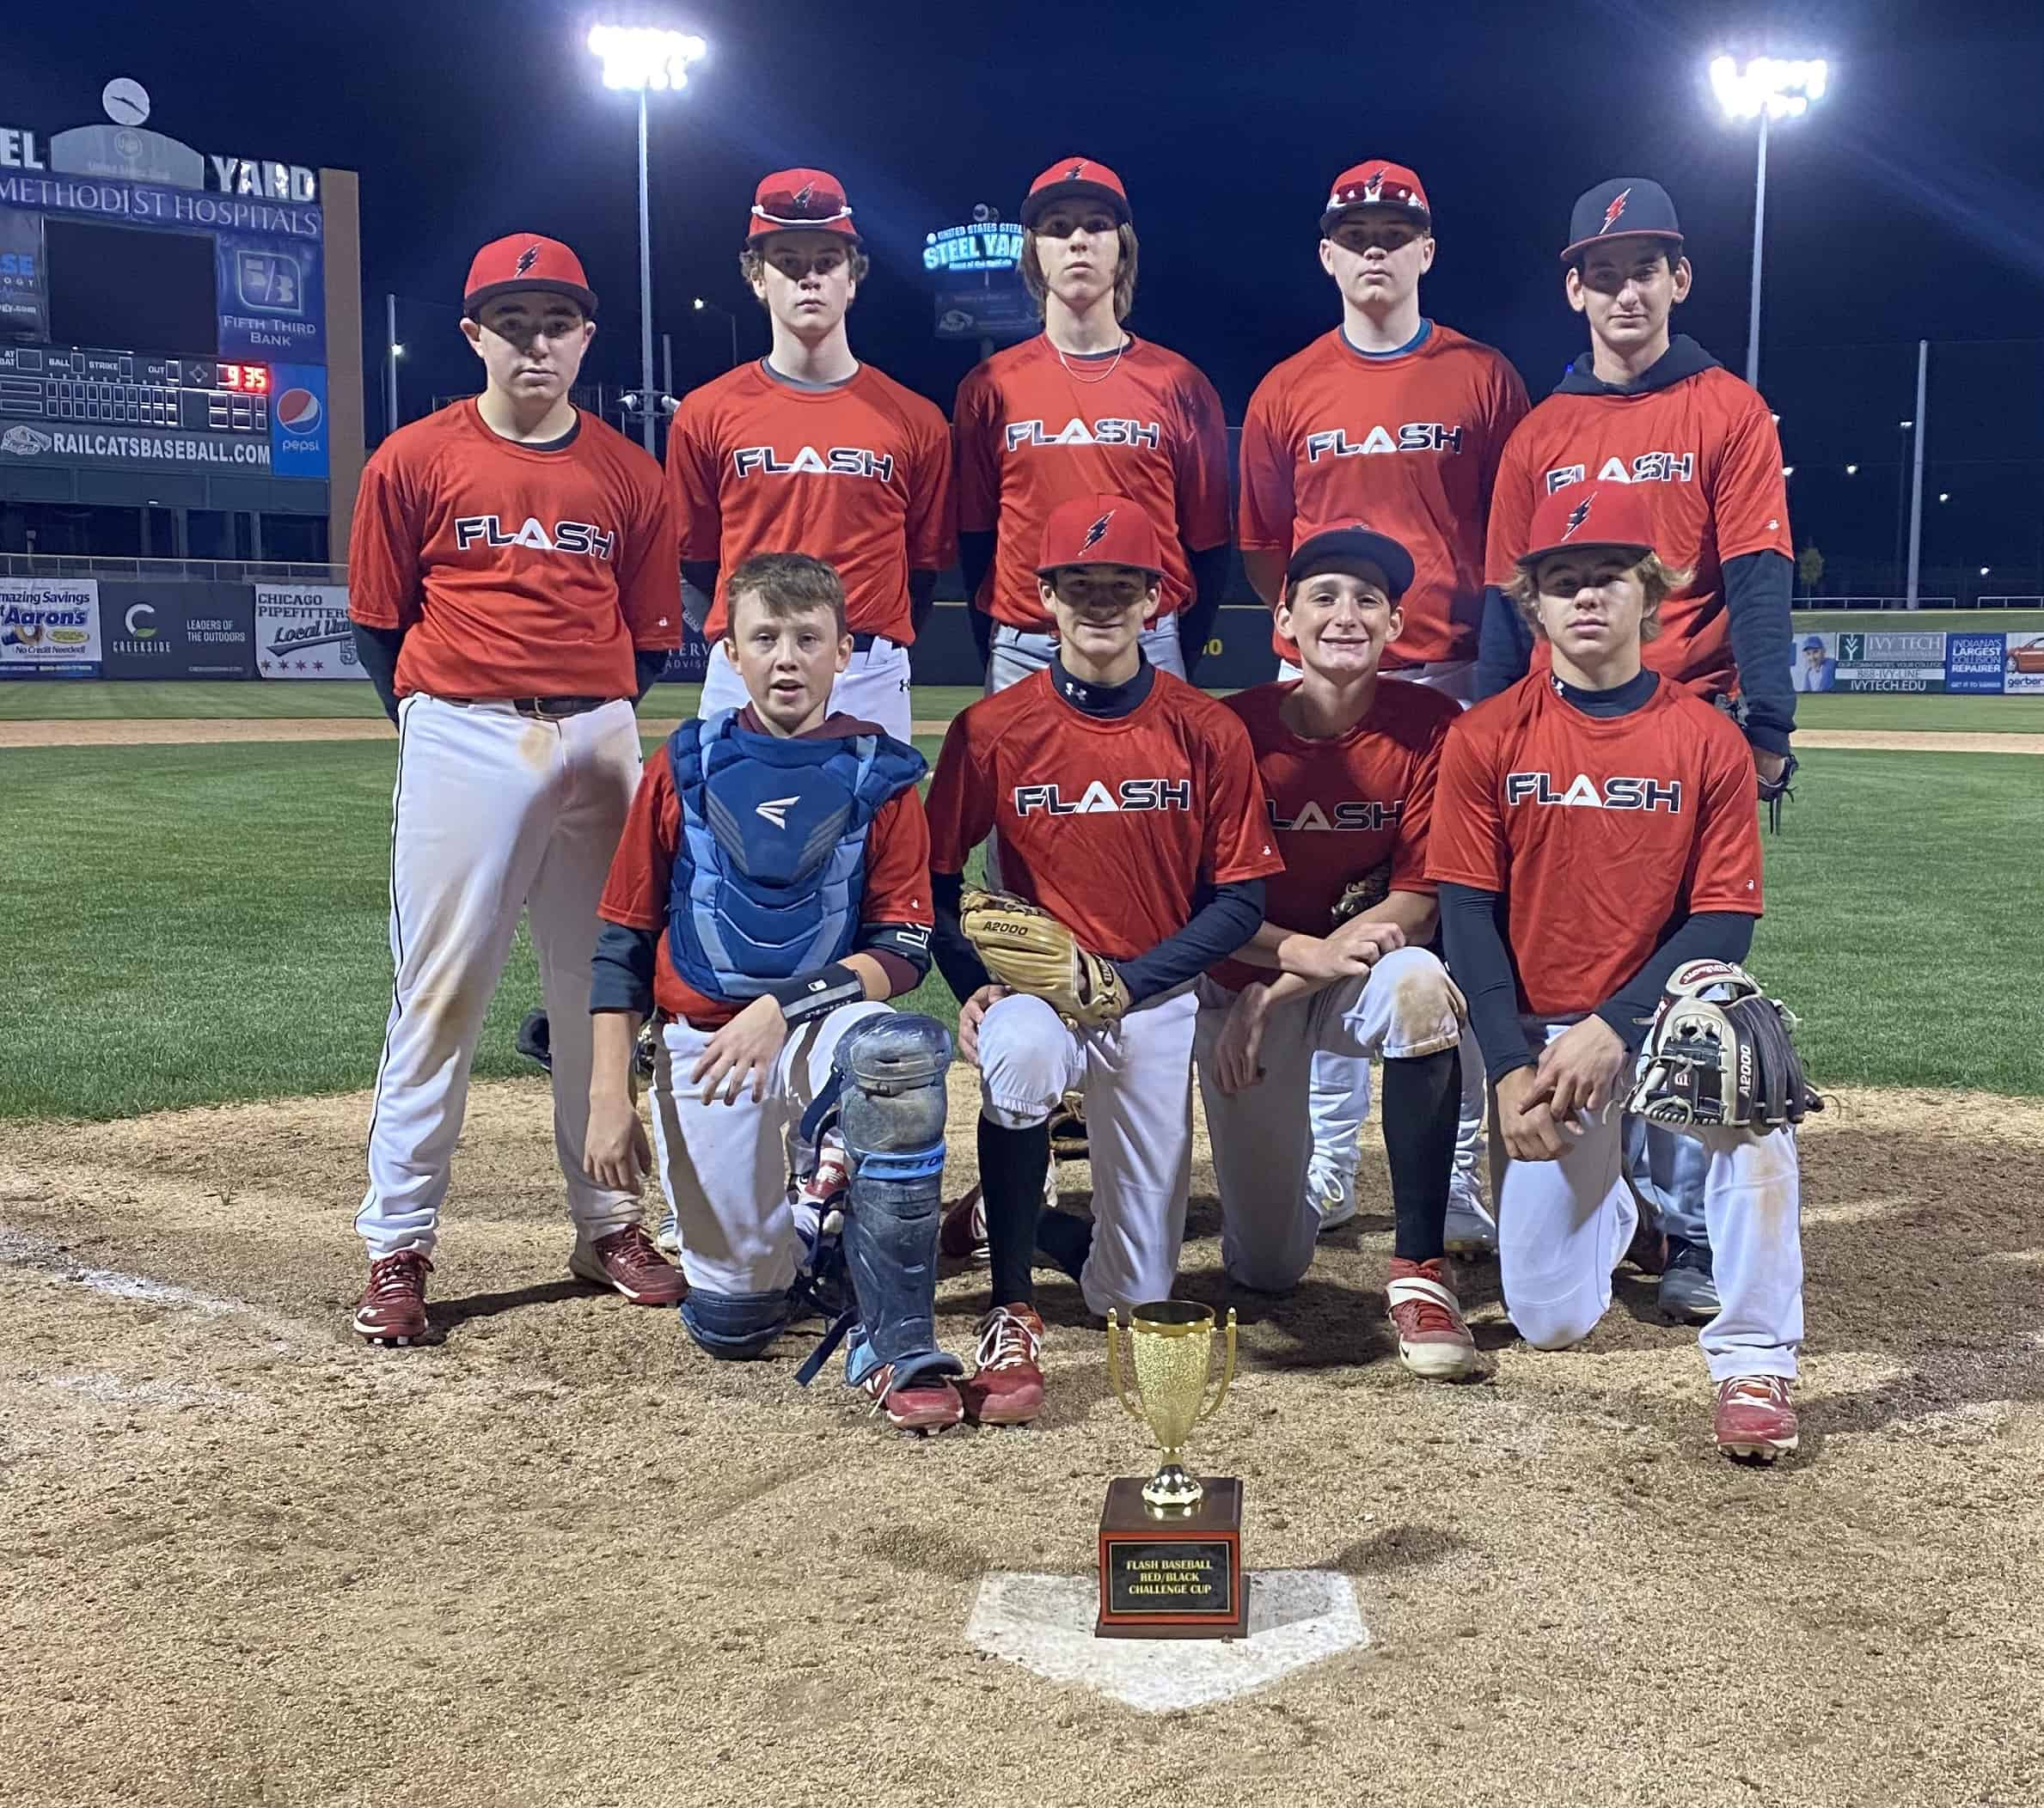 16U Red Flash baseball Team kneeling in front of the Red/Black trophy cup